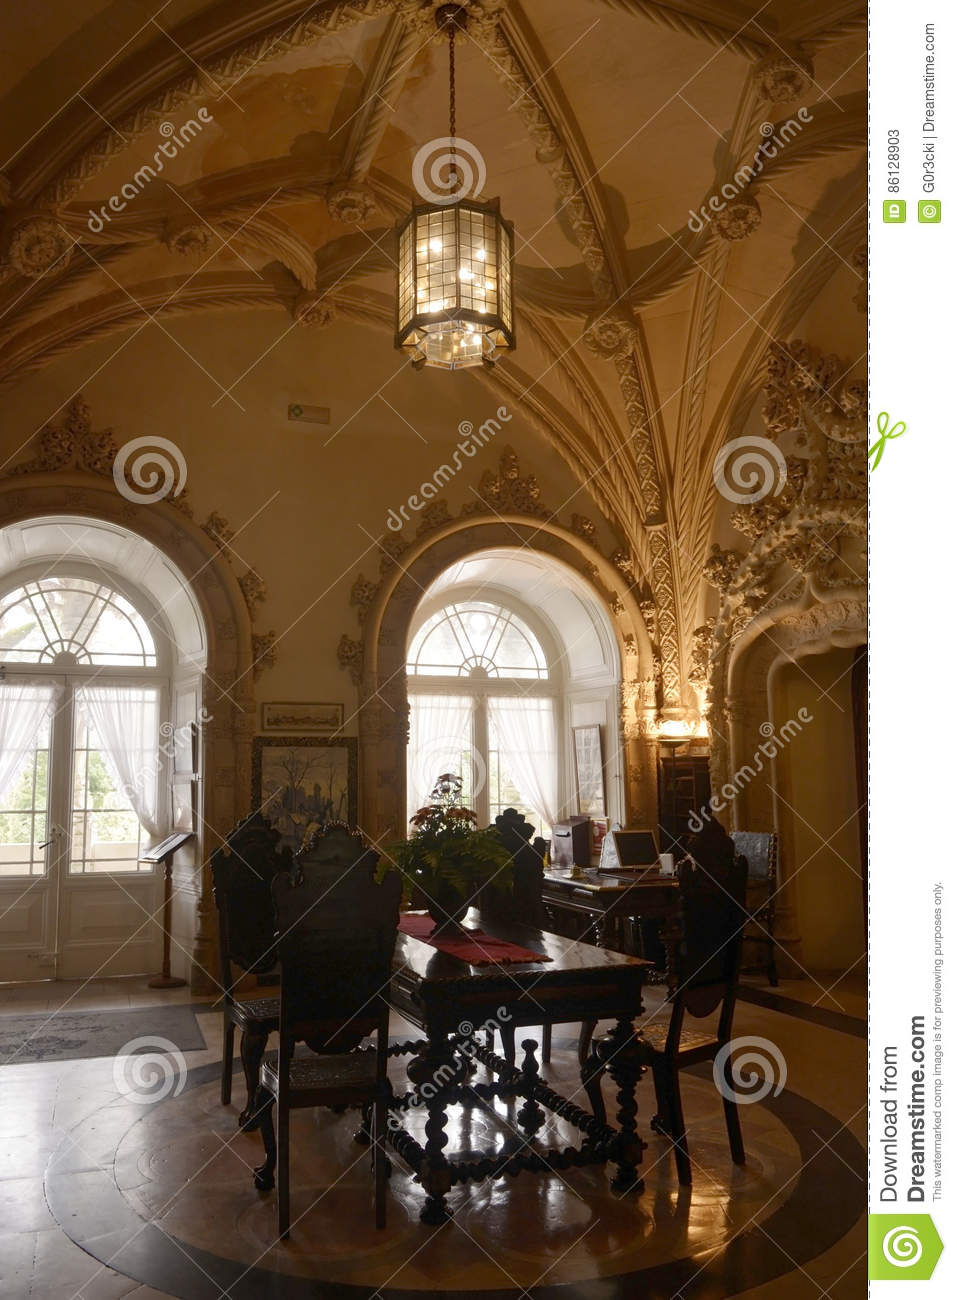 Hotel lobby from bussaco palace historical building vaulted ceiling